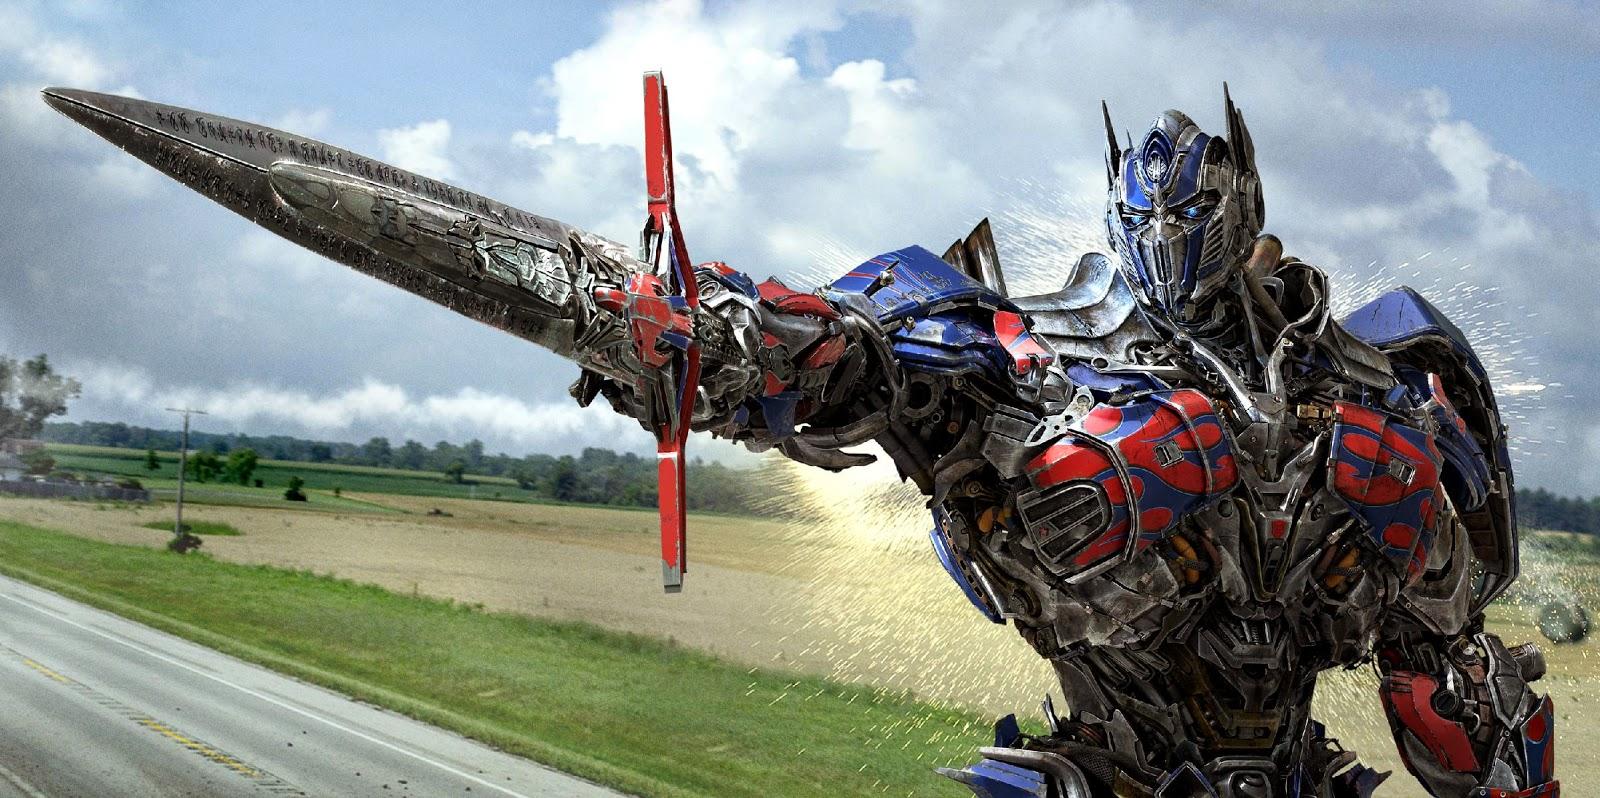 download transformers 4: age of extinction 2014 full movie free